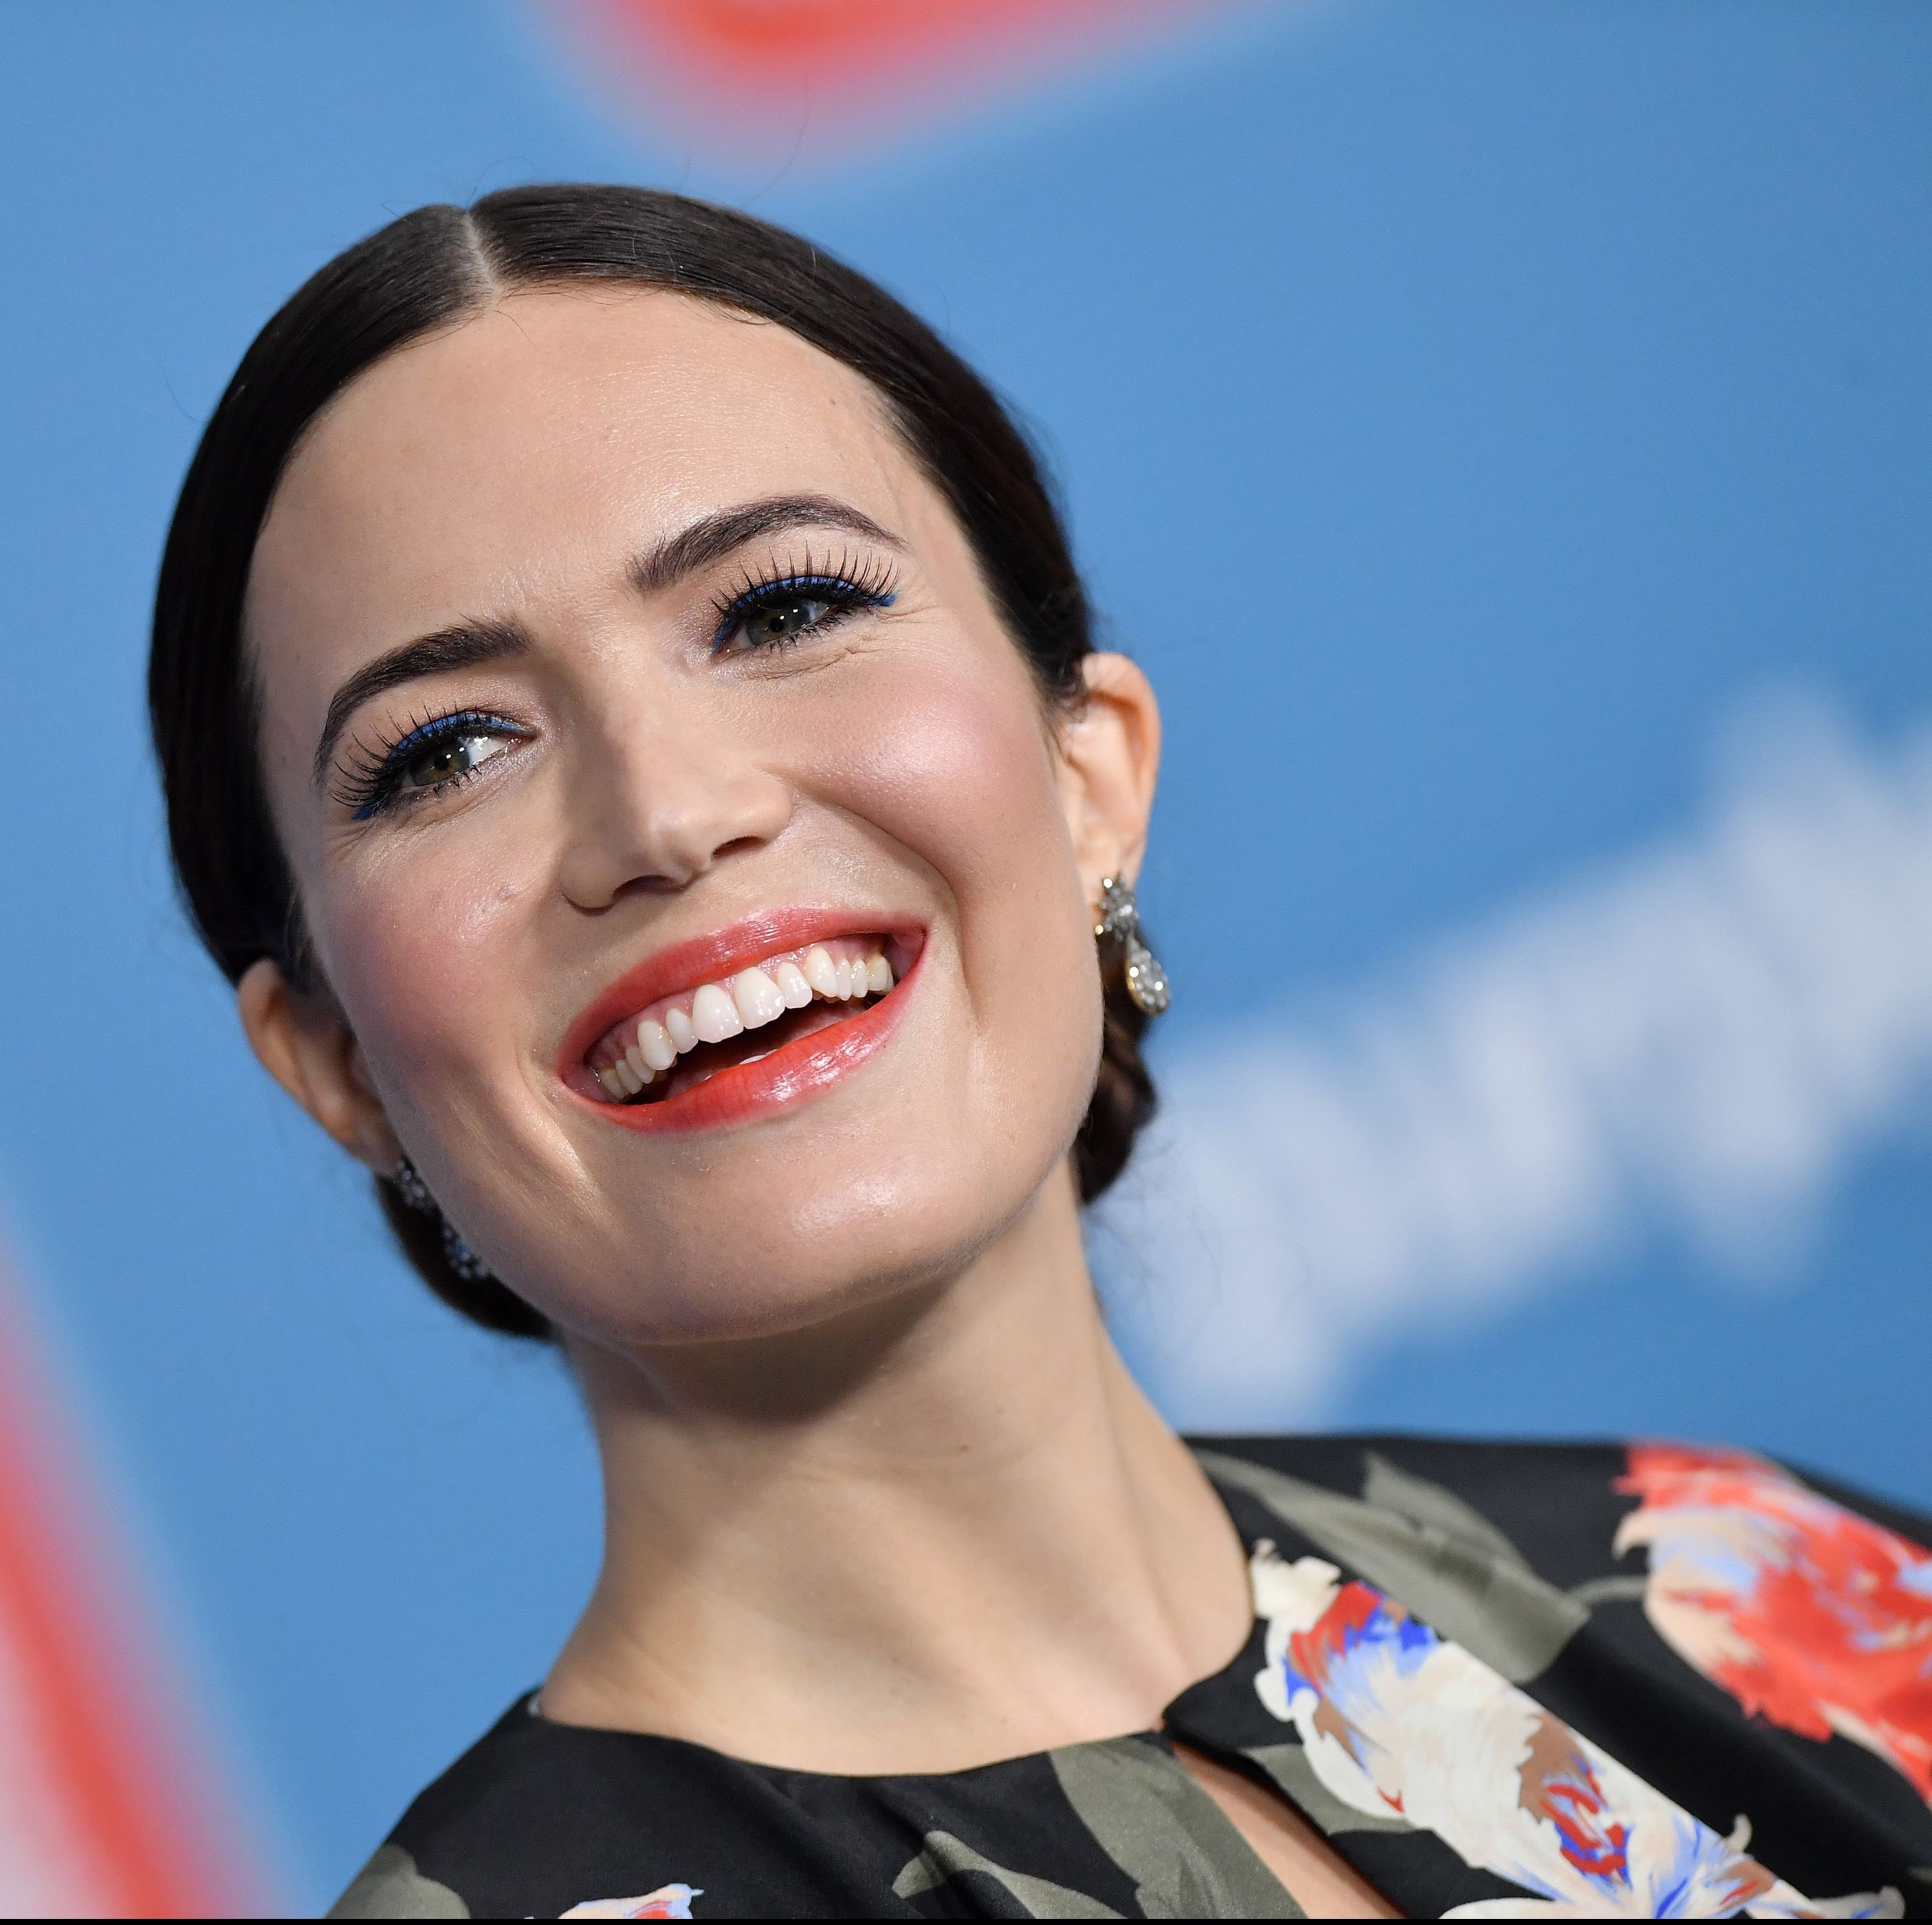 Mandy Moore Just Shared A Seriously Radiant No-Makeup Workout Selfie On Instagram